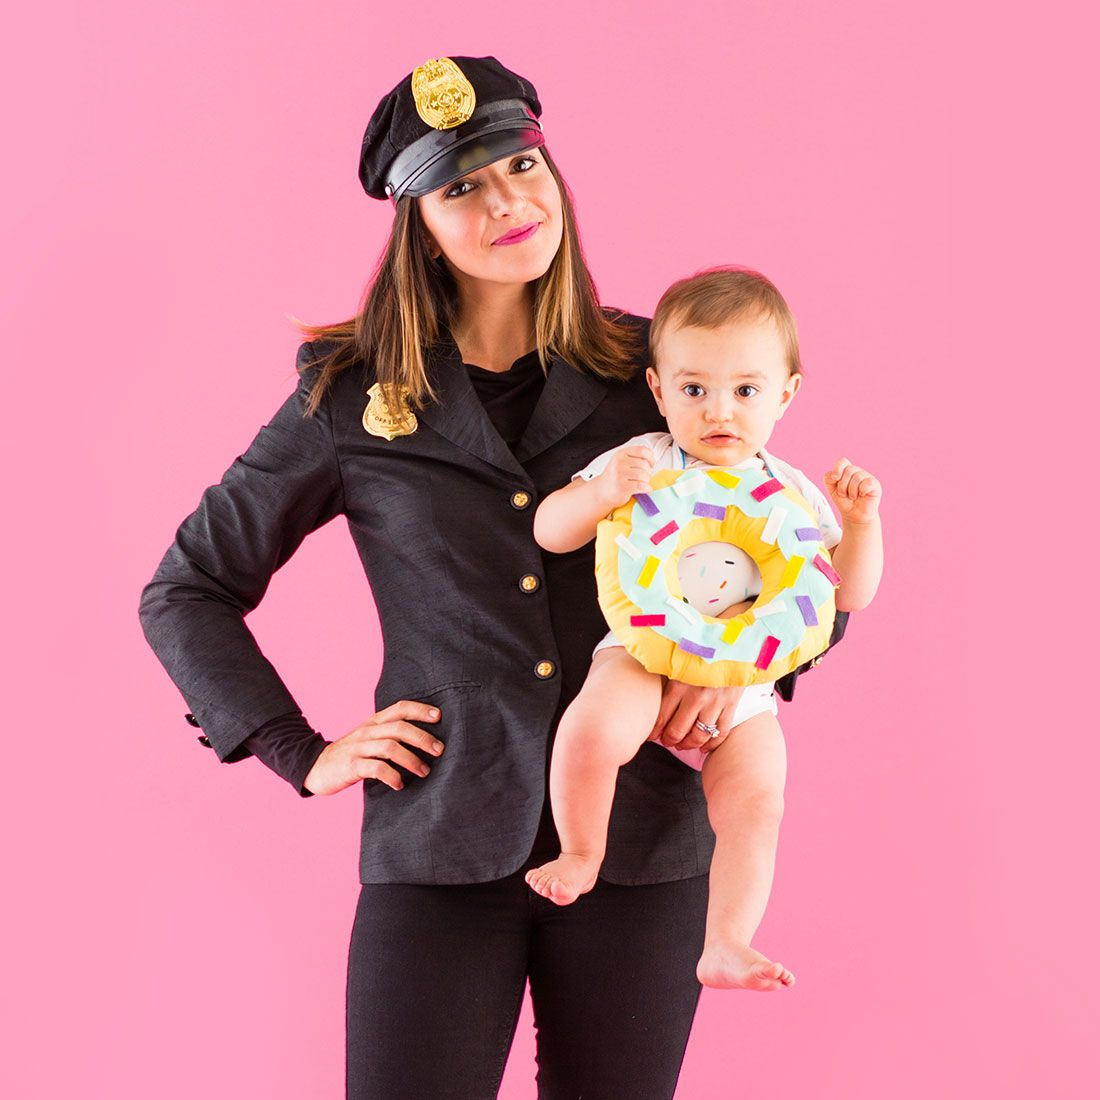 Mother And Baby Halloween Costumes.6 Extremely Easy And Adorable Costumes For Mom And Baby Baby Girl Halloween Costumes Baby Halloween Costumes For Boys Newborn Halloween Costumes